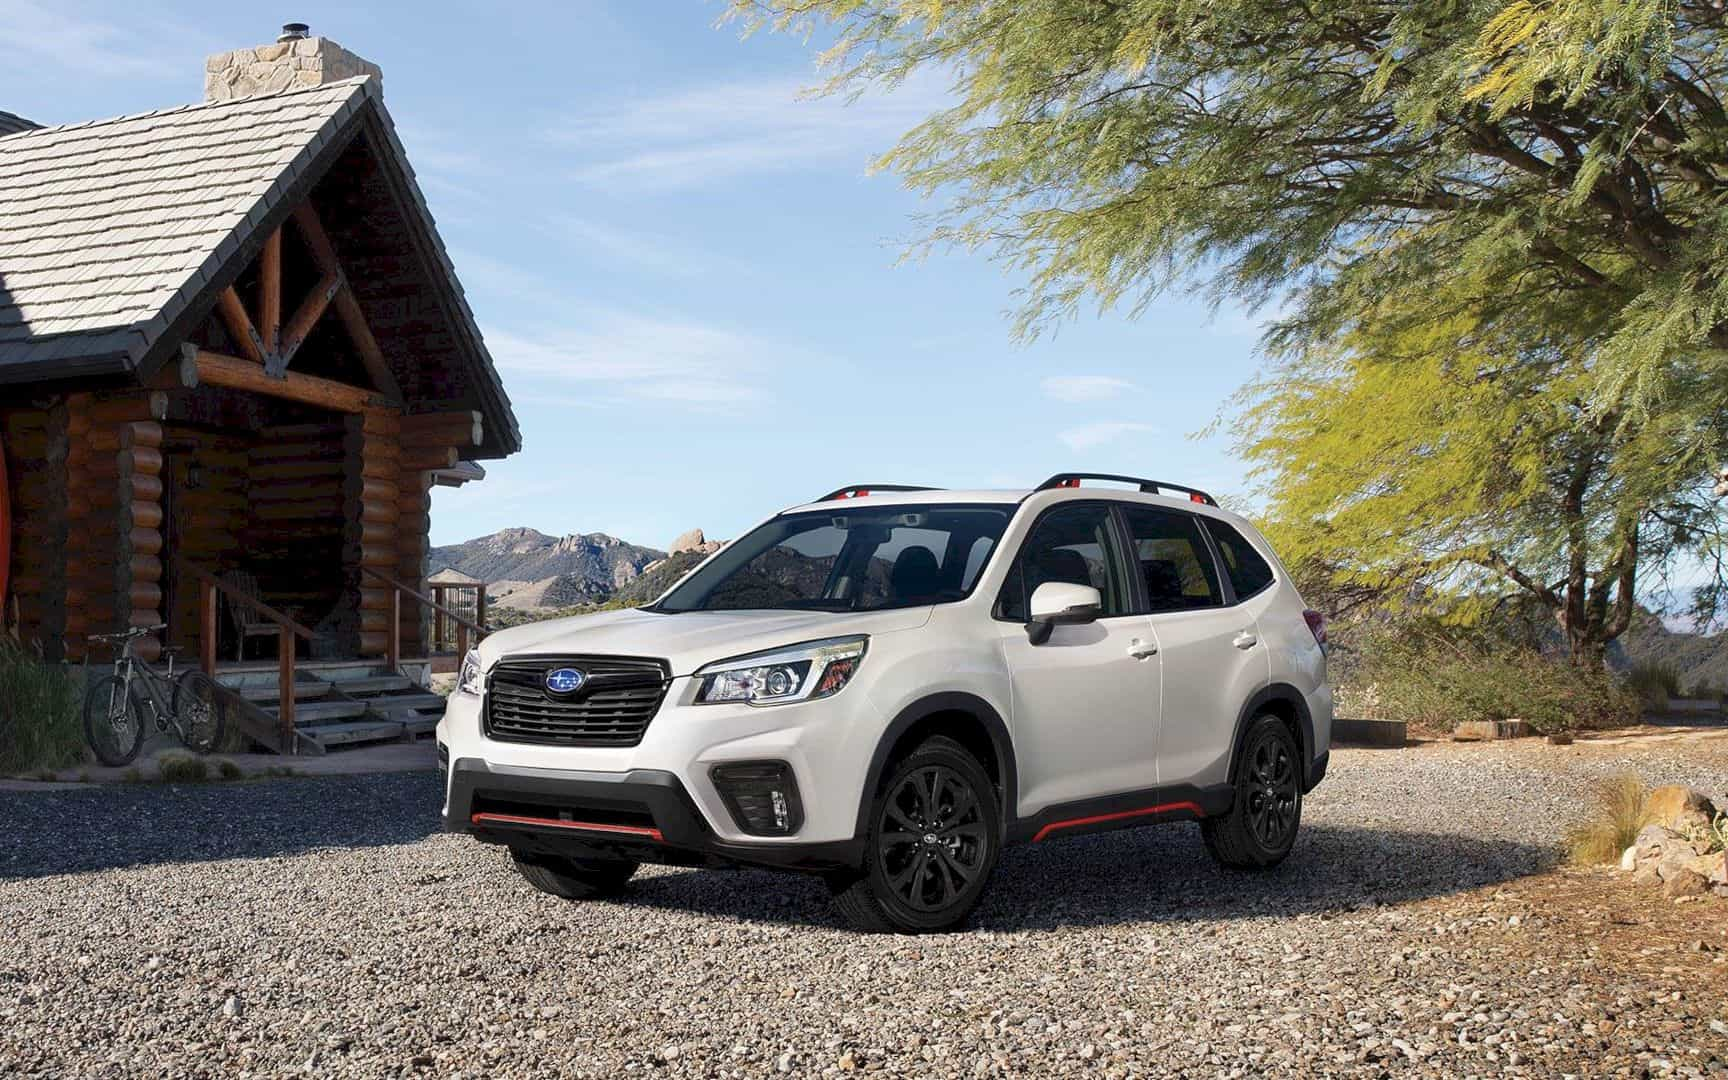 The 2019 Subaru Forester: The SUV for All You Love